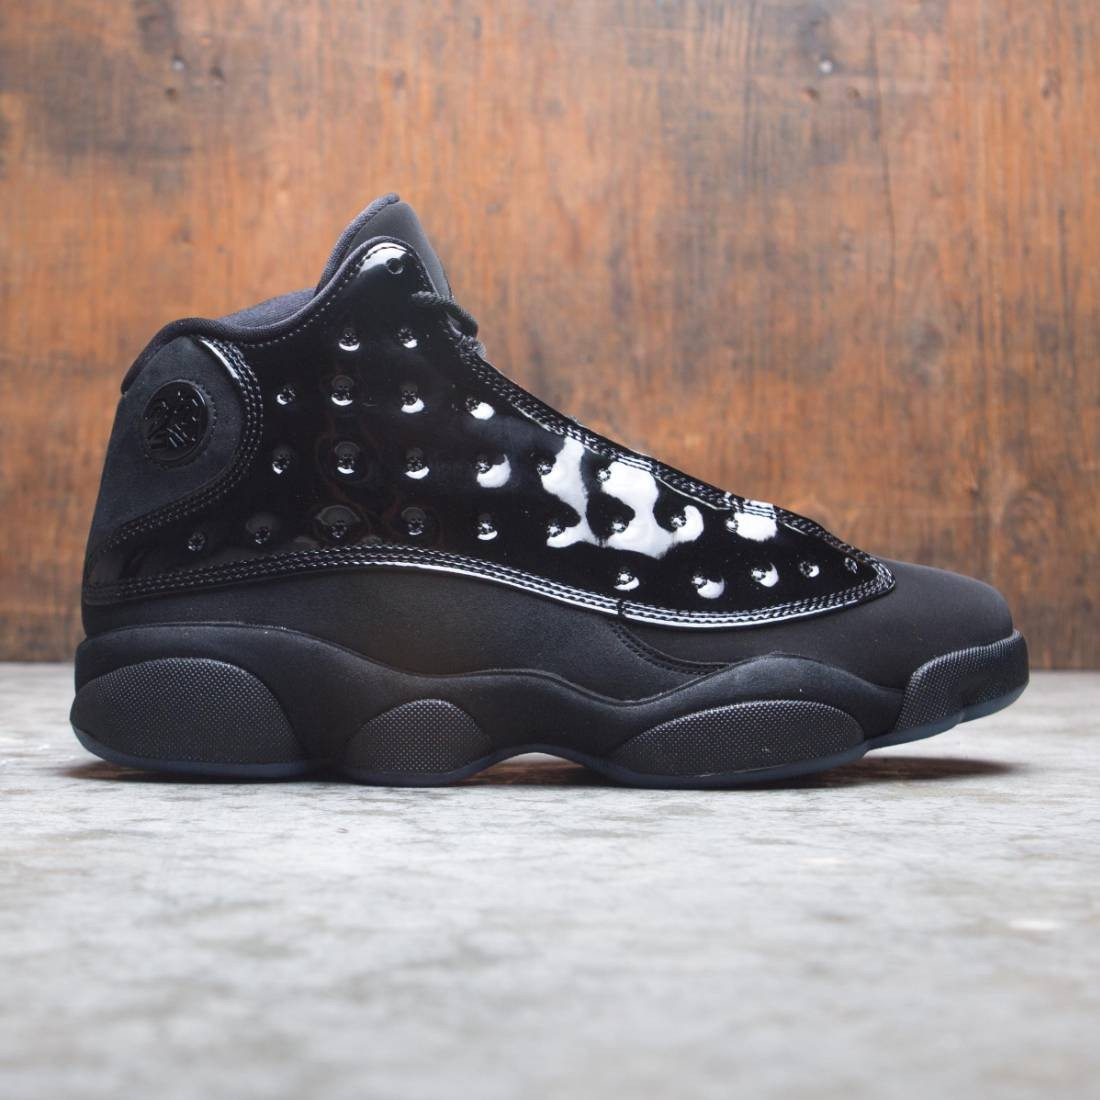 chaussures de sport e487d 166a3 Air Jordan 13 Retro Men (black / black)